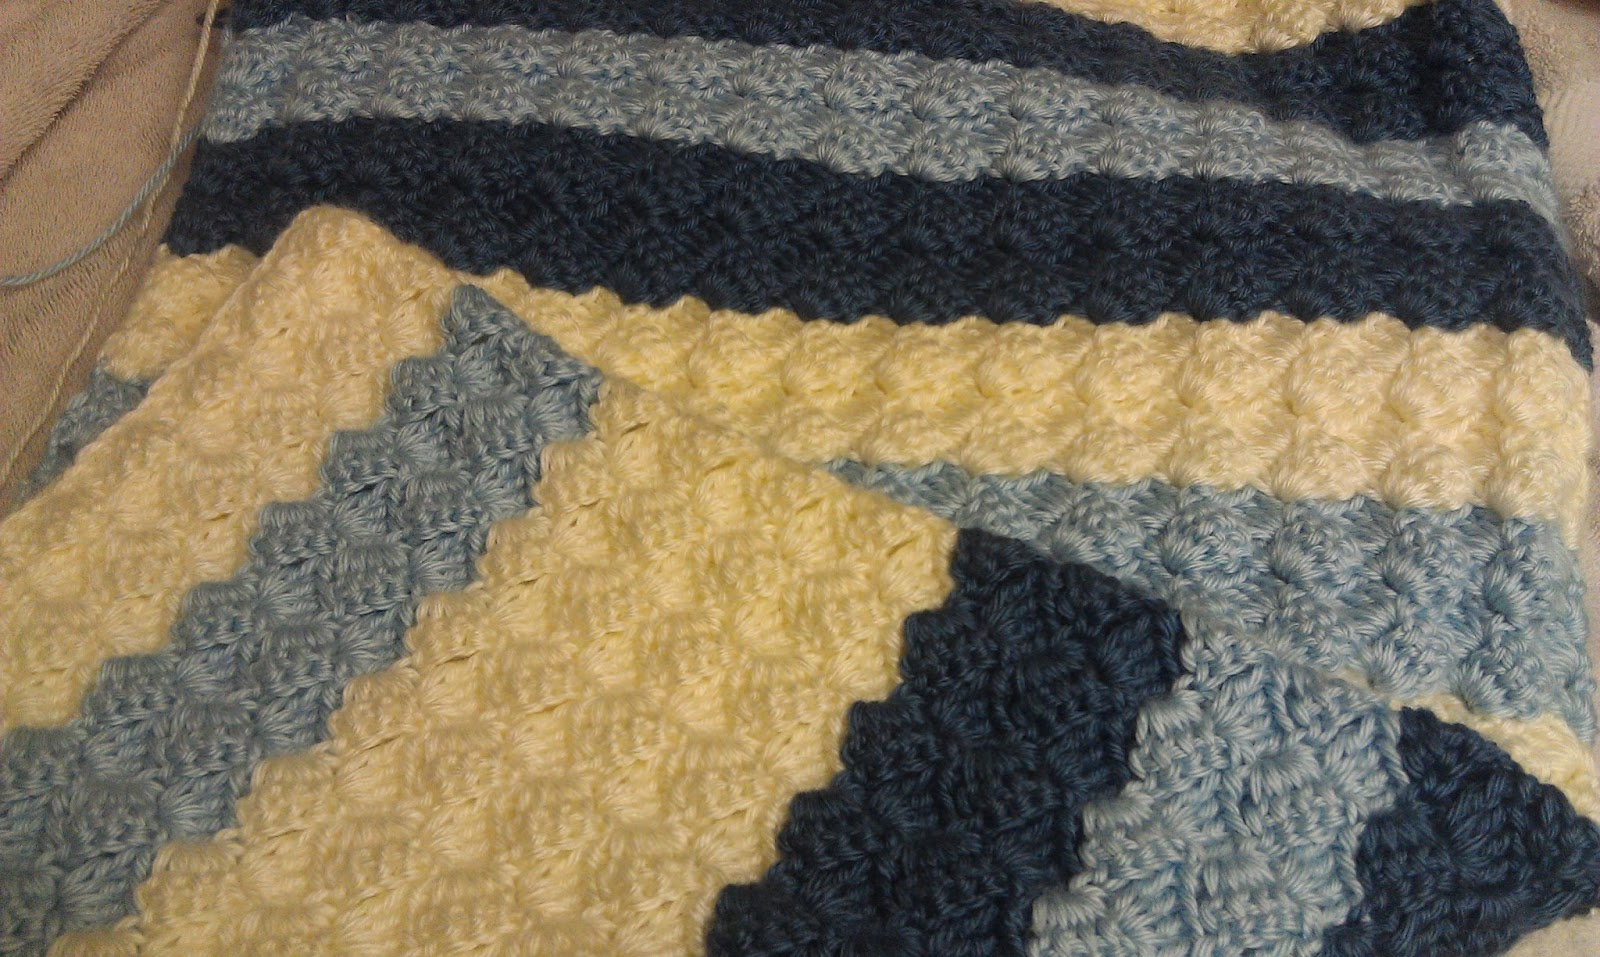 New Crochet Baby Afghan Patterns : Missed Stitches Crochet: A New Year And A New Pattern!